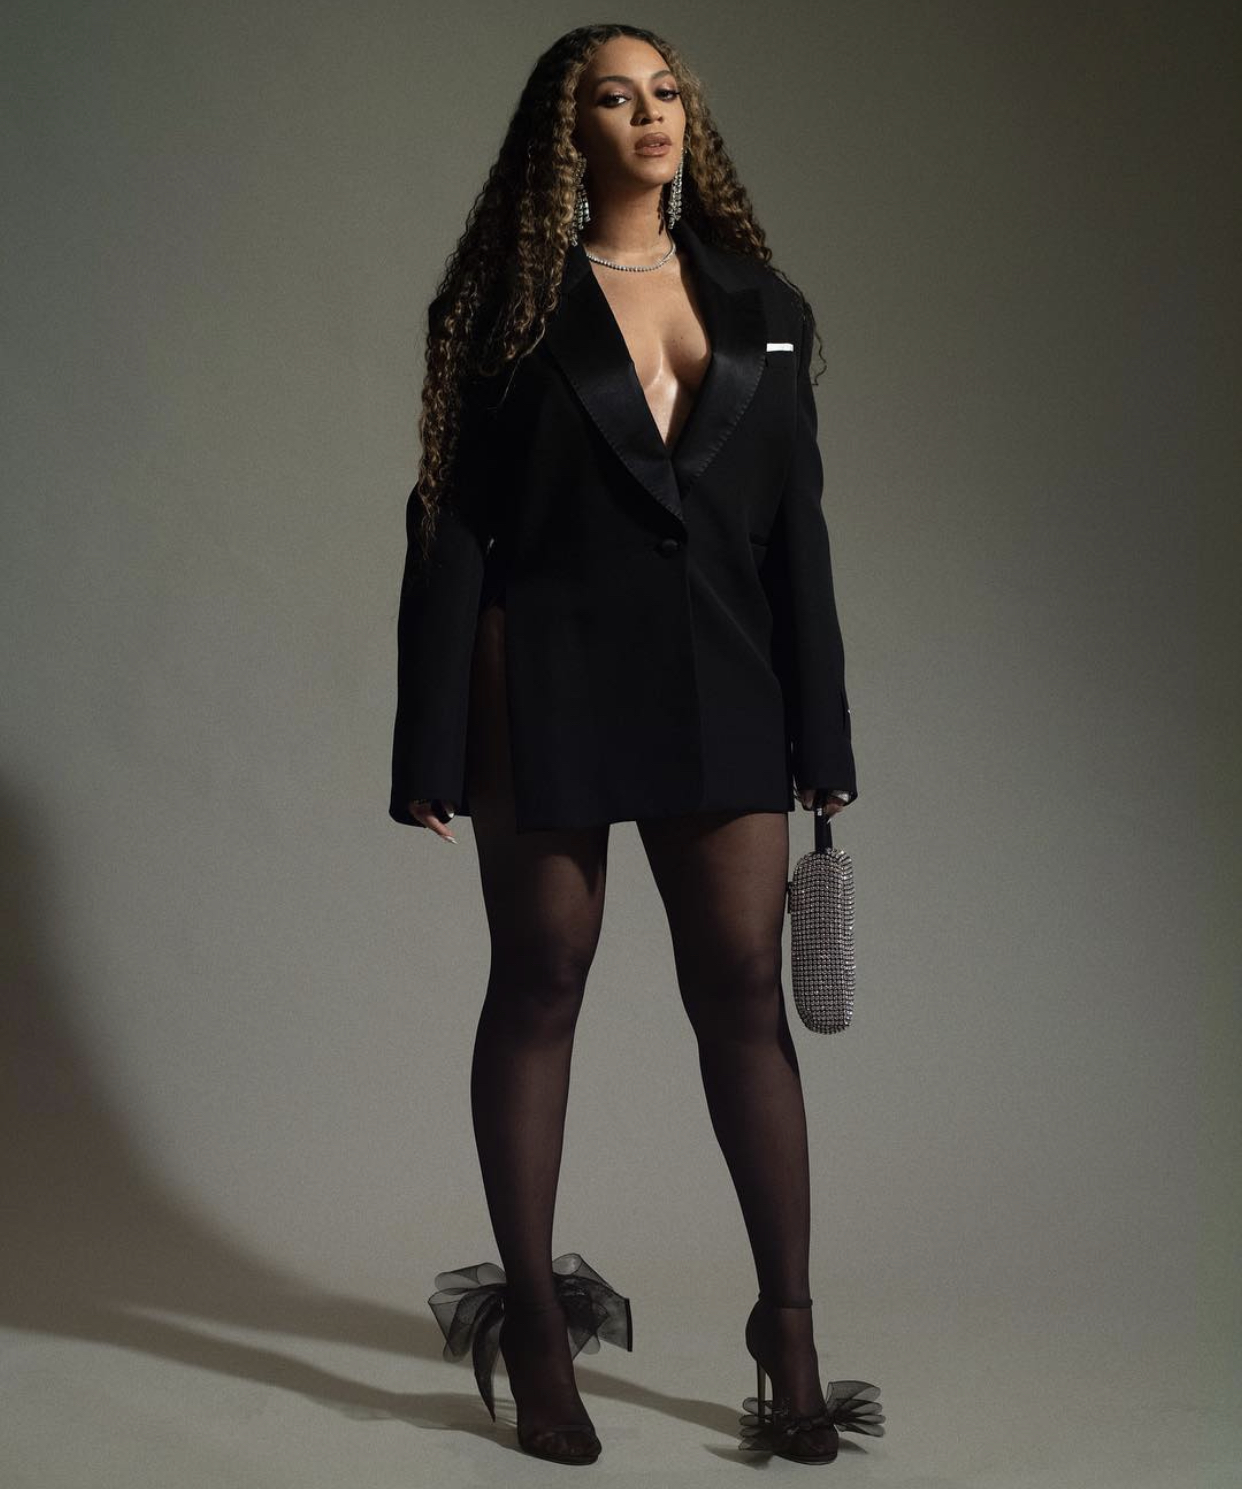 beyonce-black-parade-route-black-owned-businesses-online-2020-latest-news